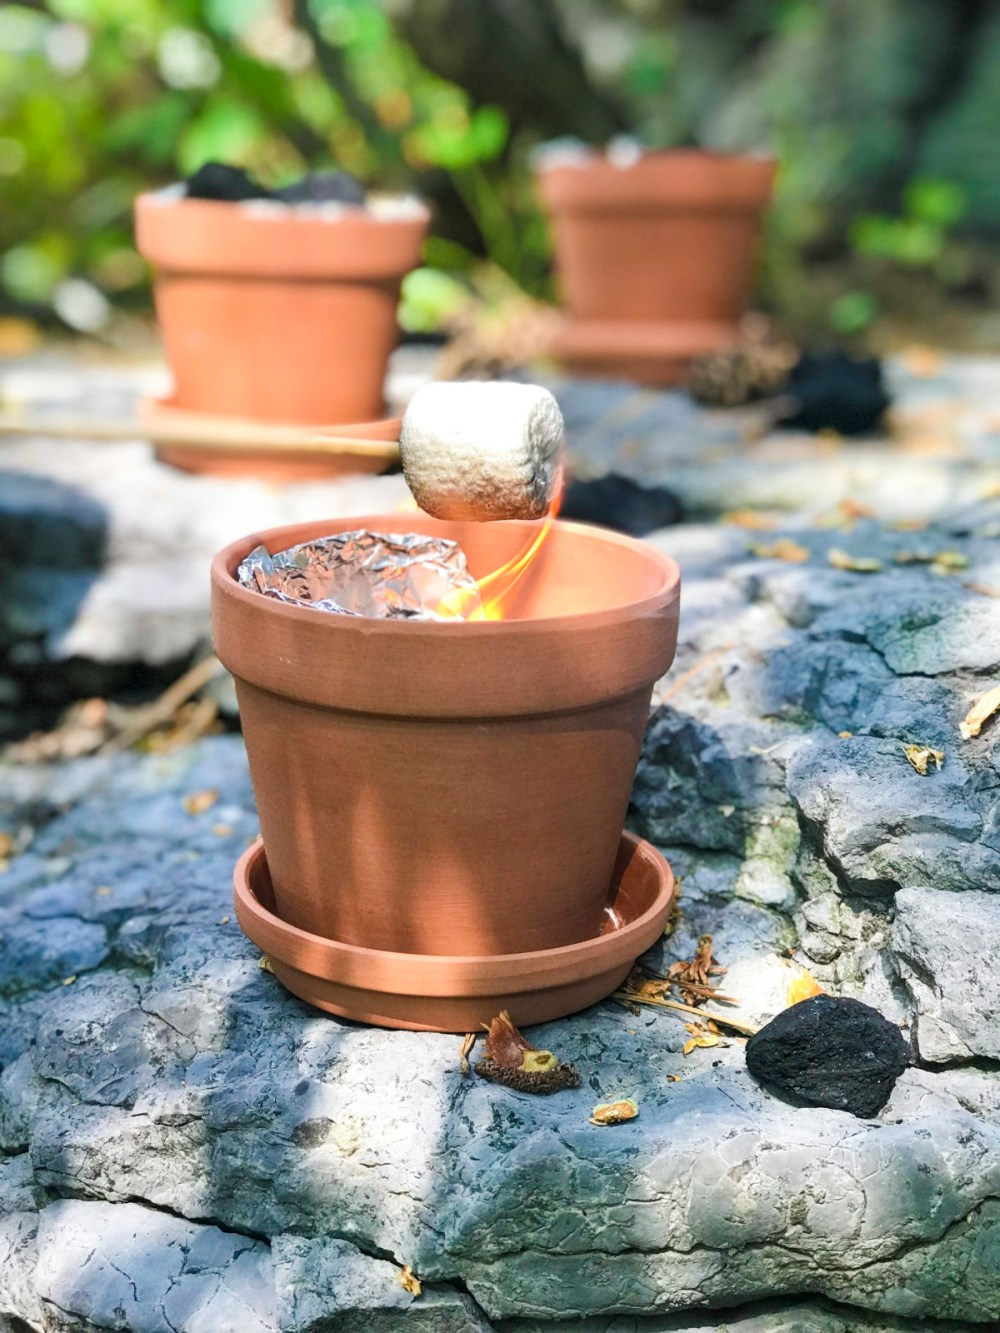 Camp in Your Backyard, Featuring DIY S'more Pots